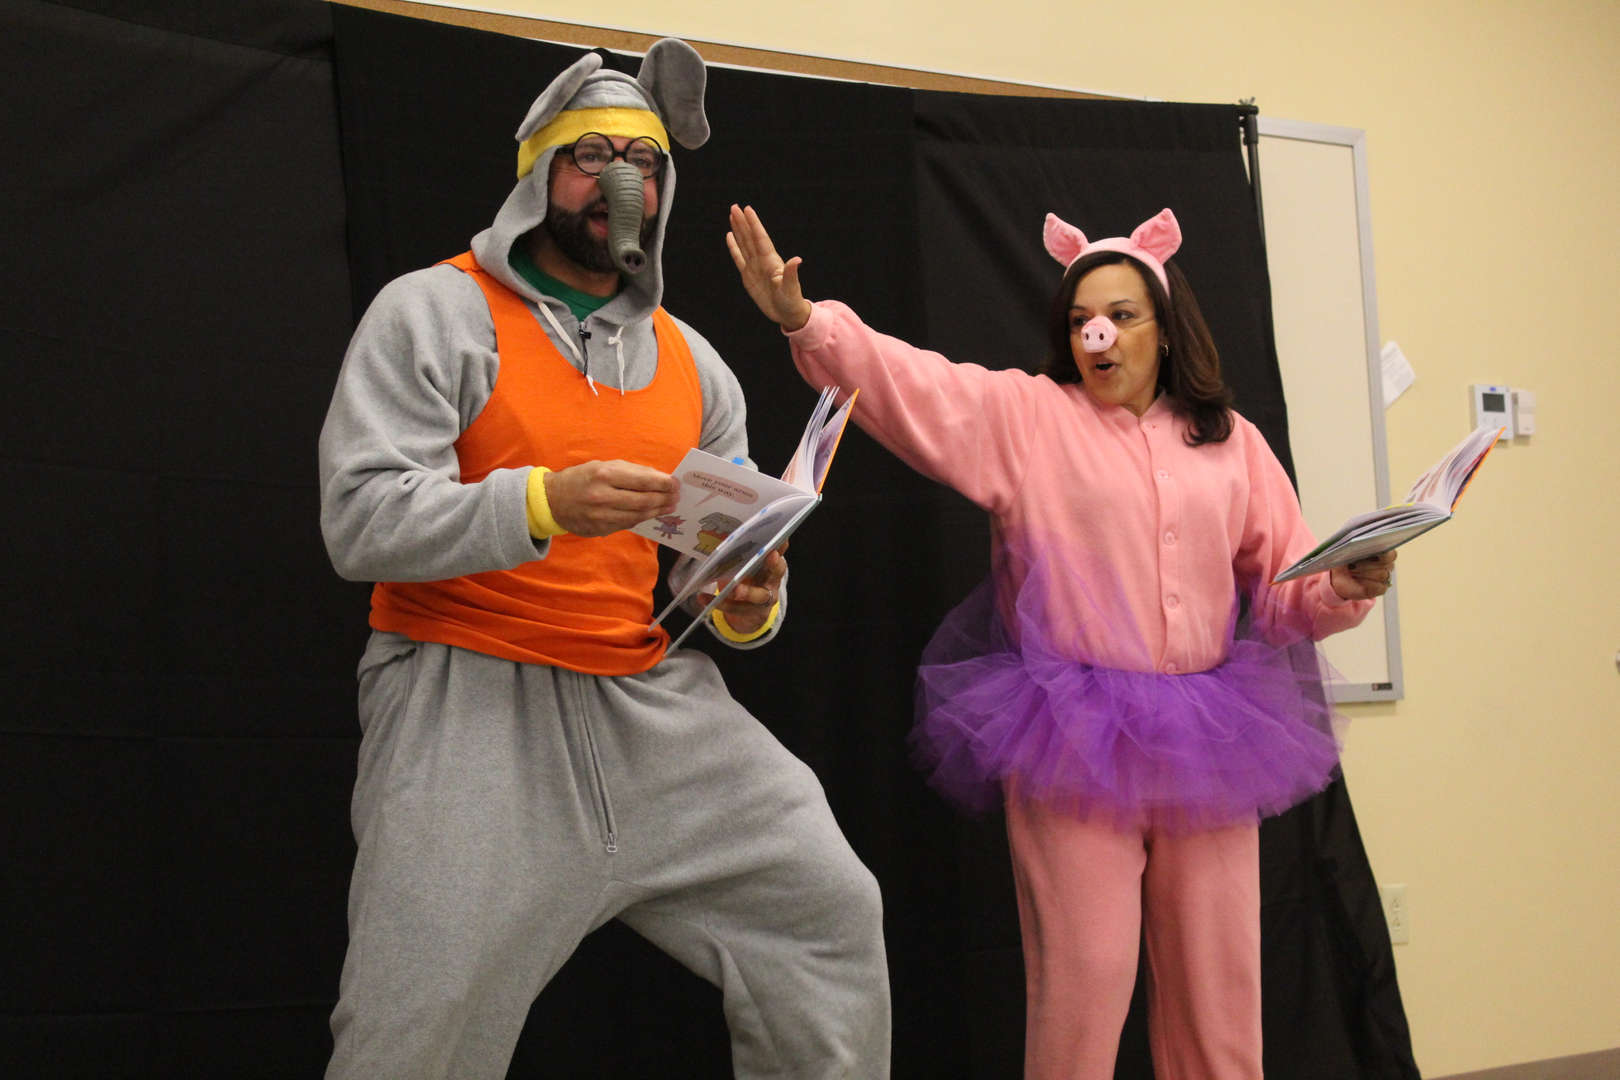 Actors dressed as an elephant and pig